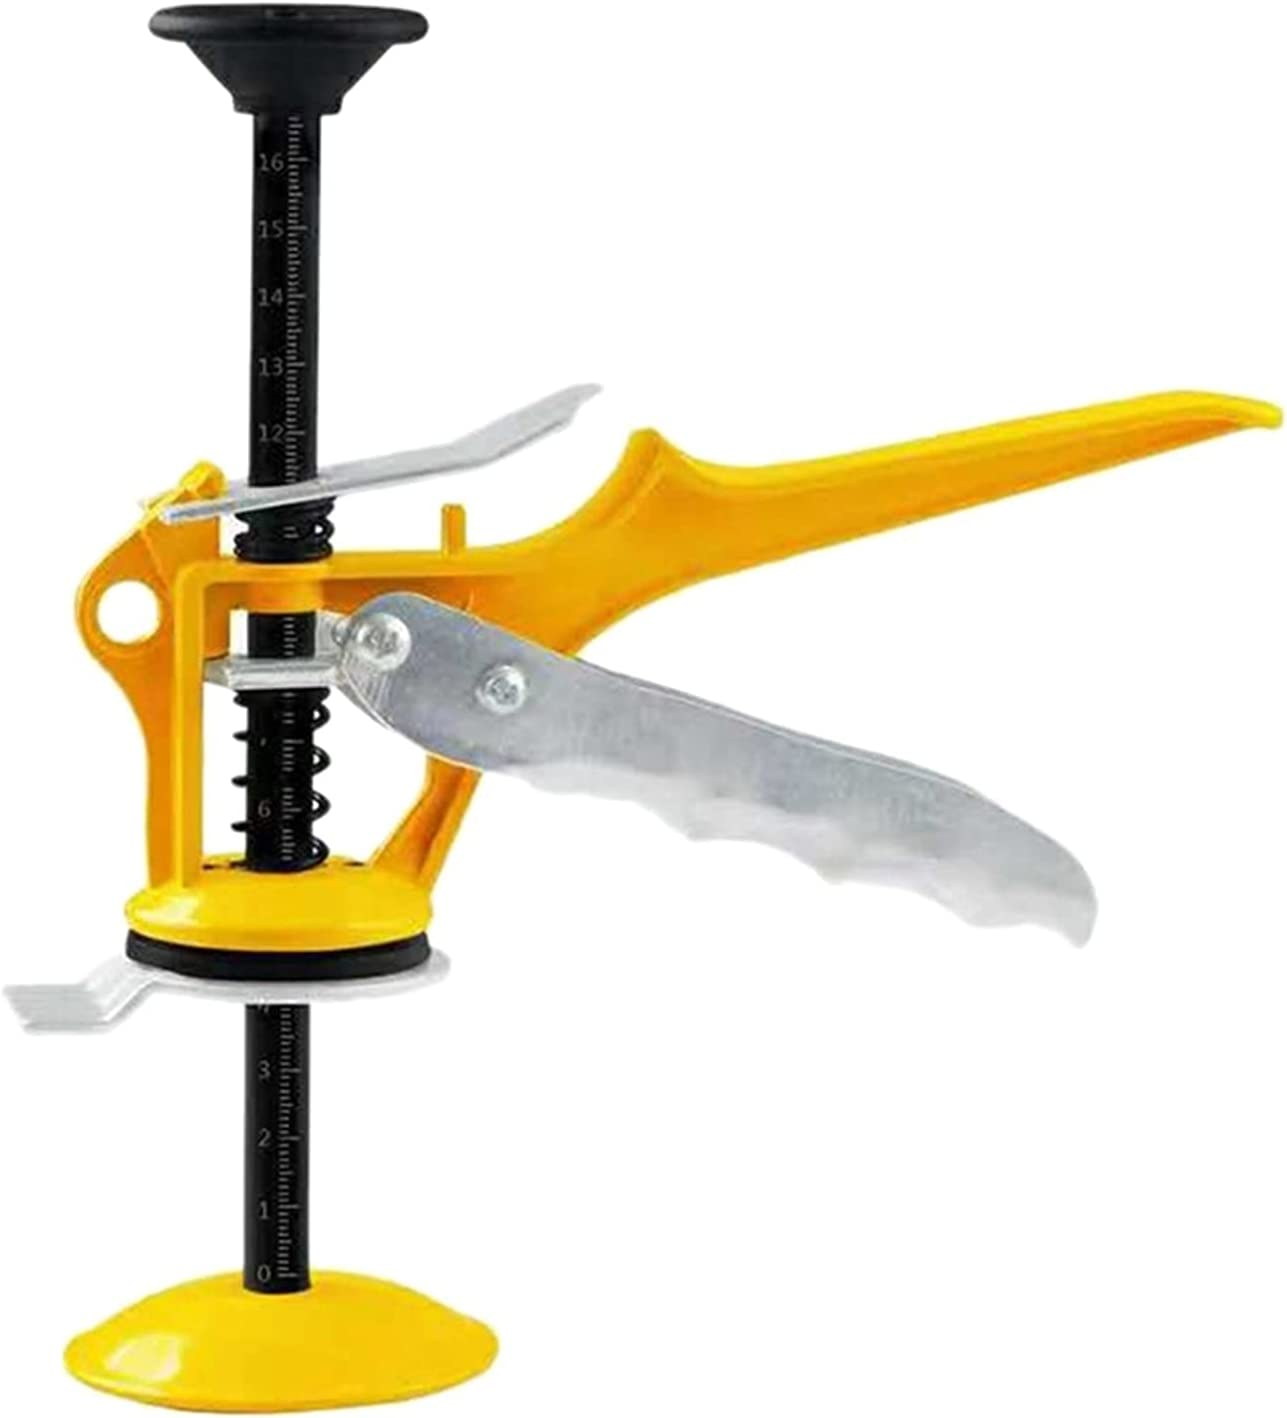 Columbus Mall BAUSE Tile Locator Max 68% OFF Height Adjuster Floor Lifter Bricklayer